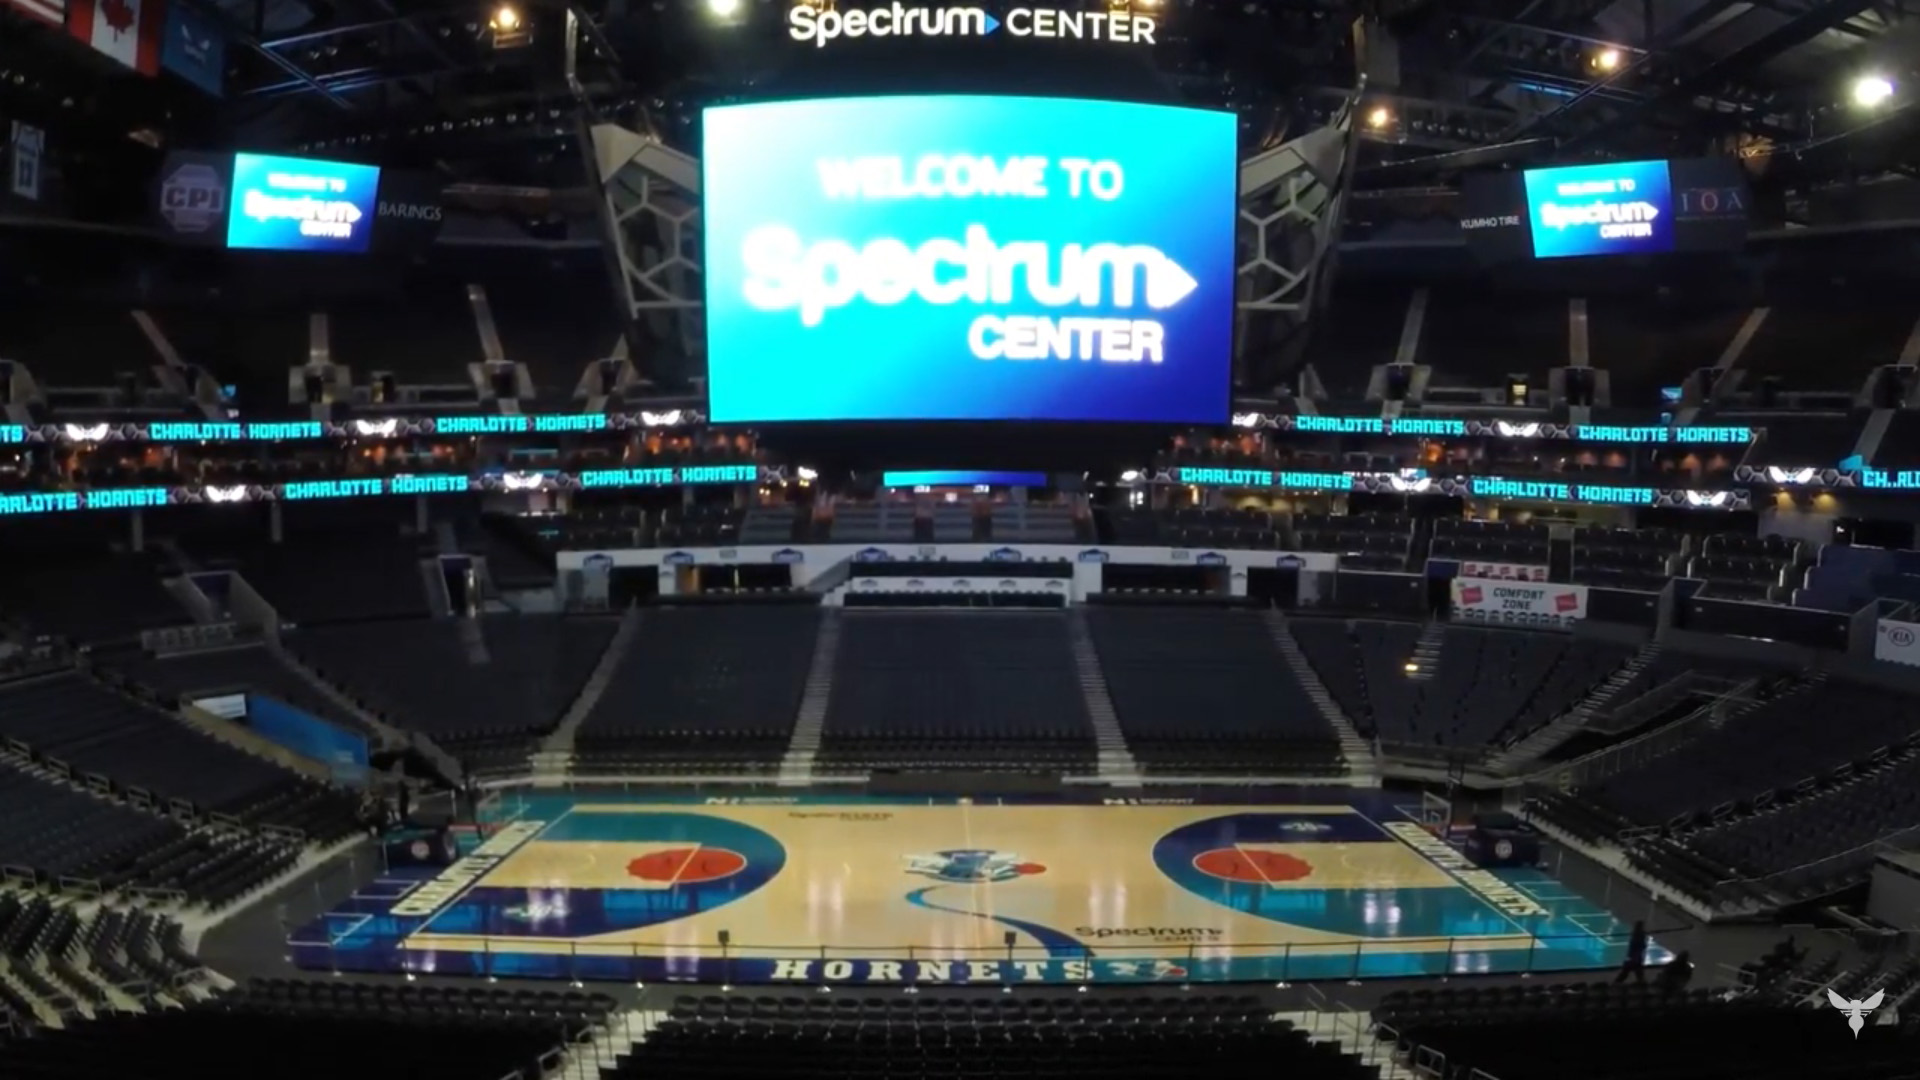 Spectrum Center Charlotte Hornets 15 juin 2020